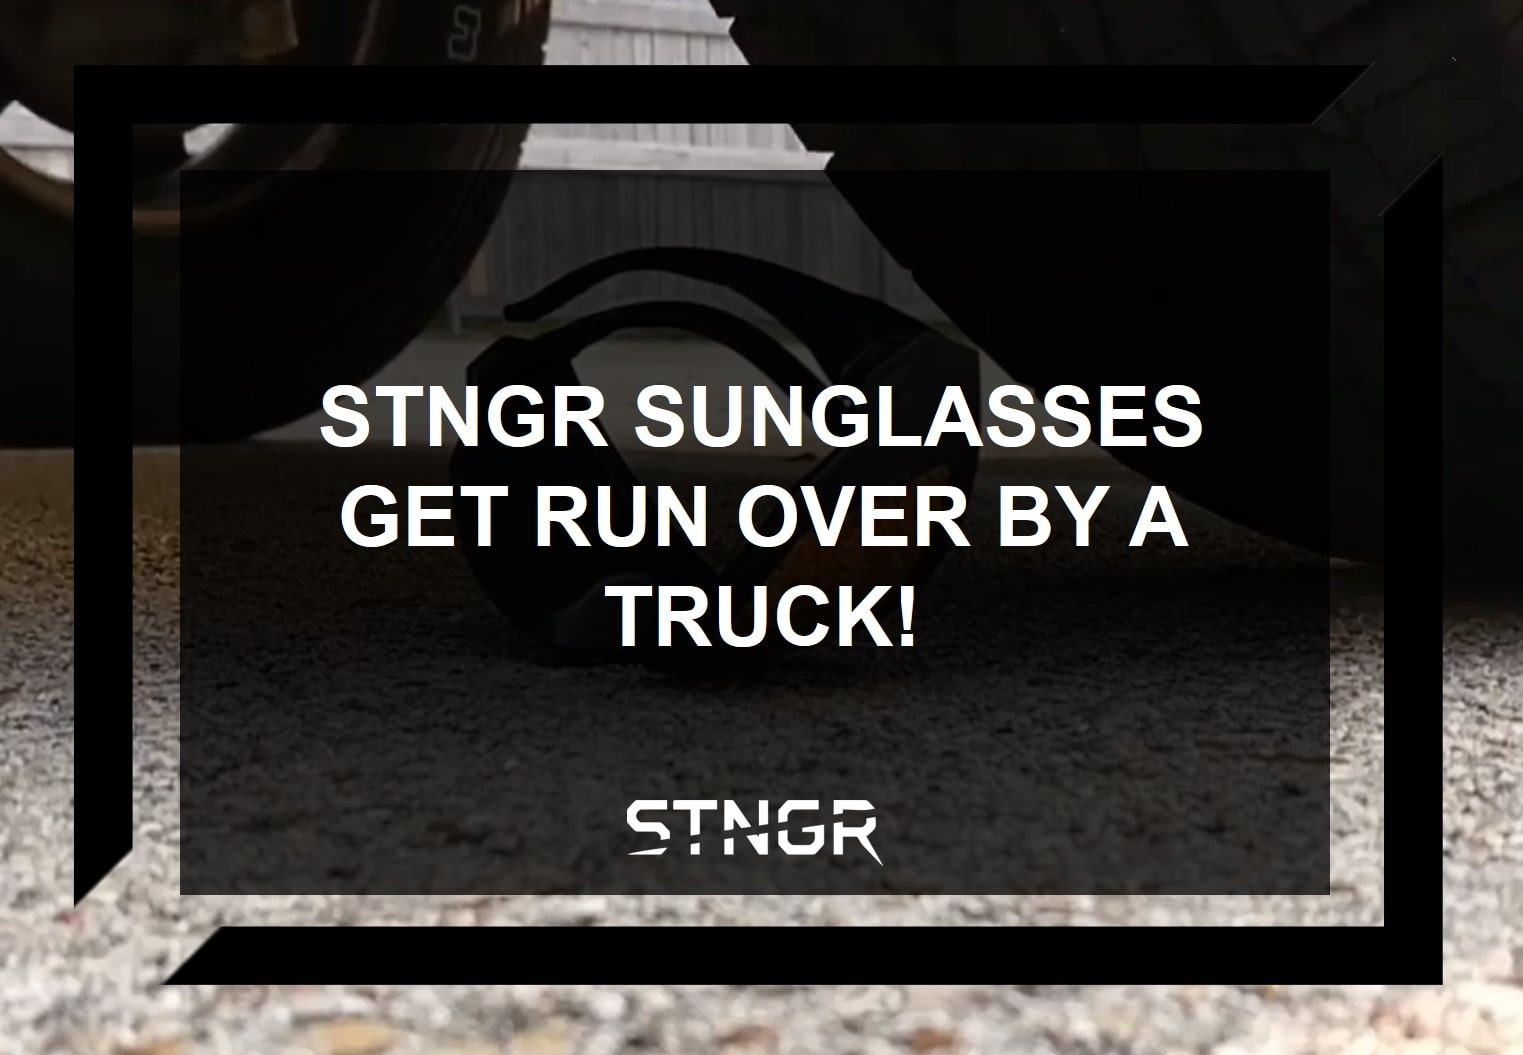 STNGR Sunglasses Get Run Over By A Truck!